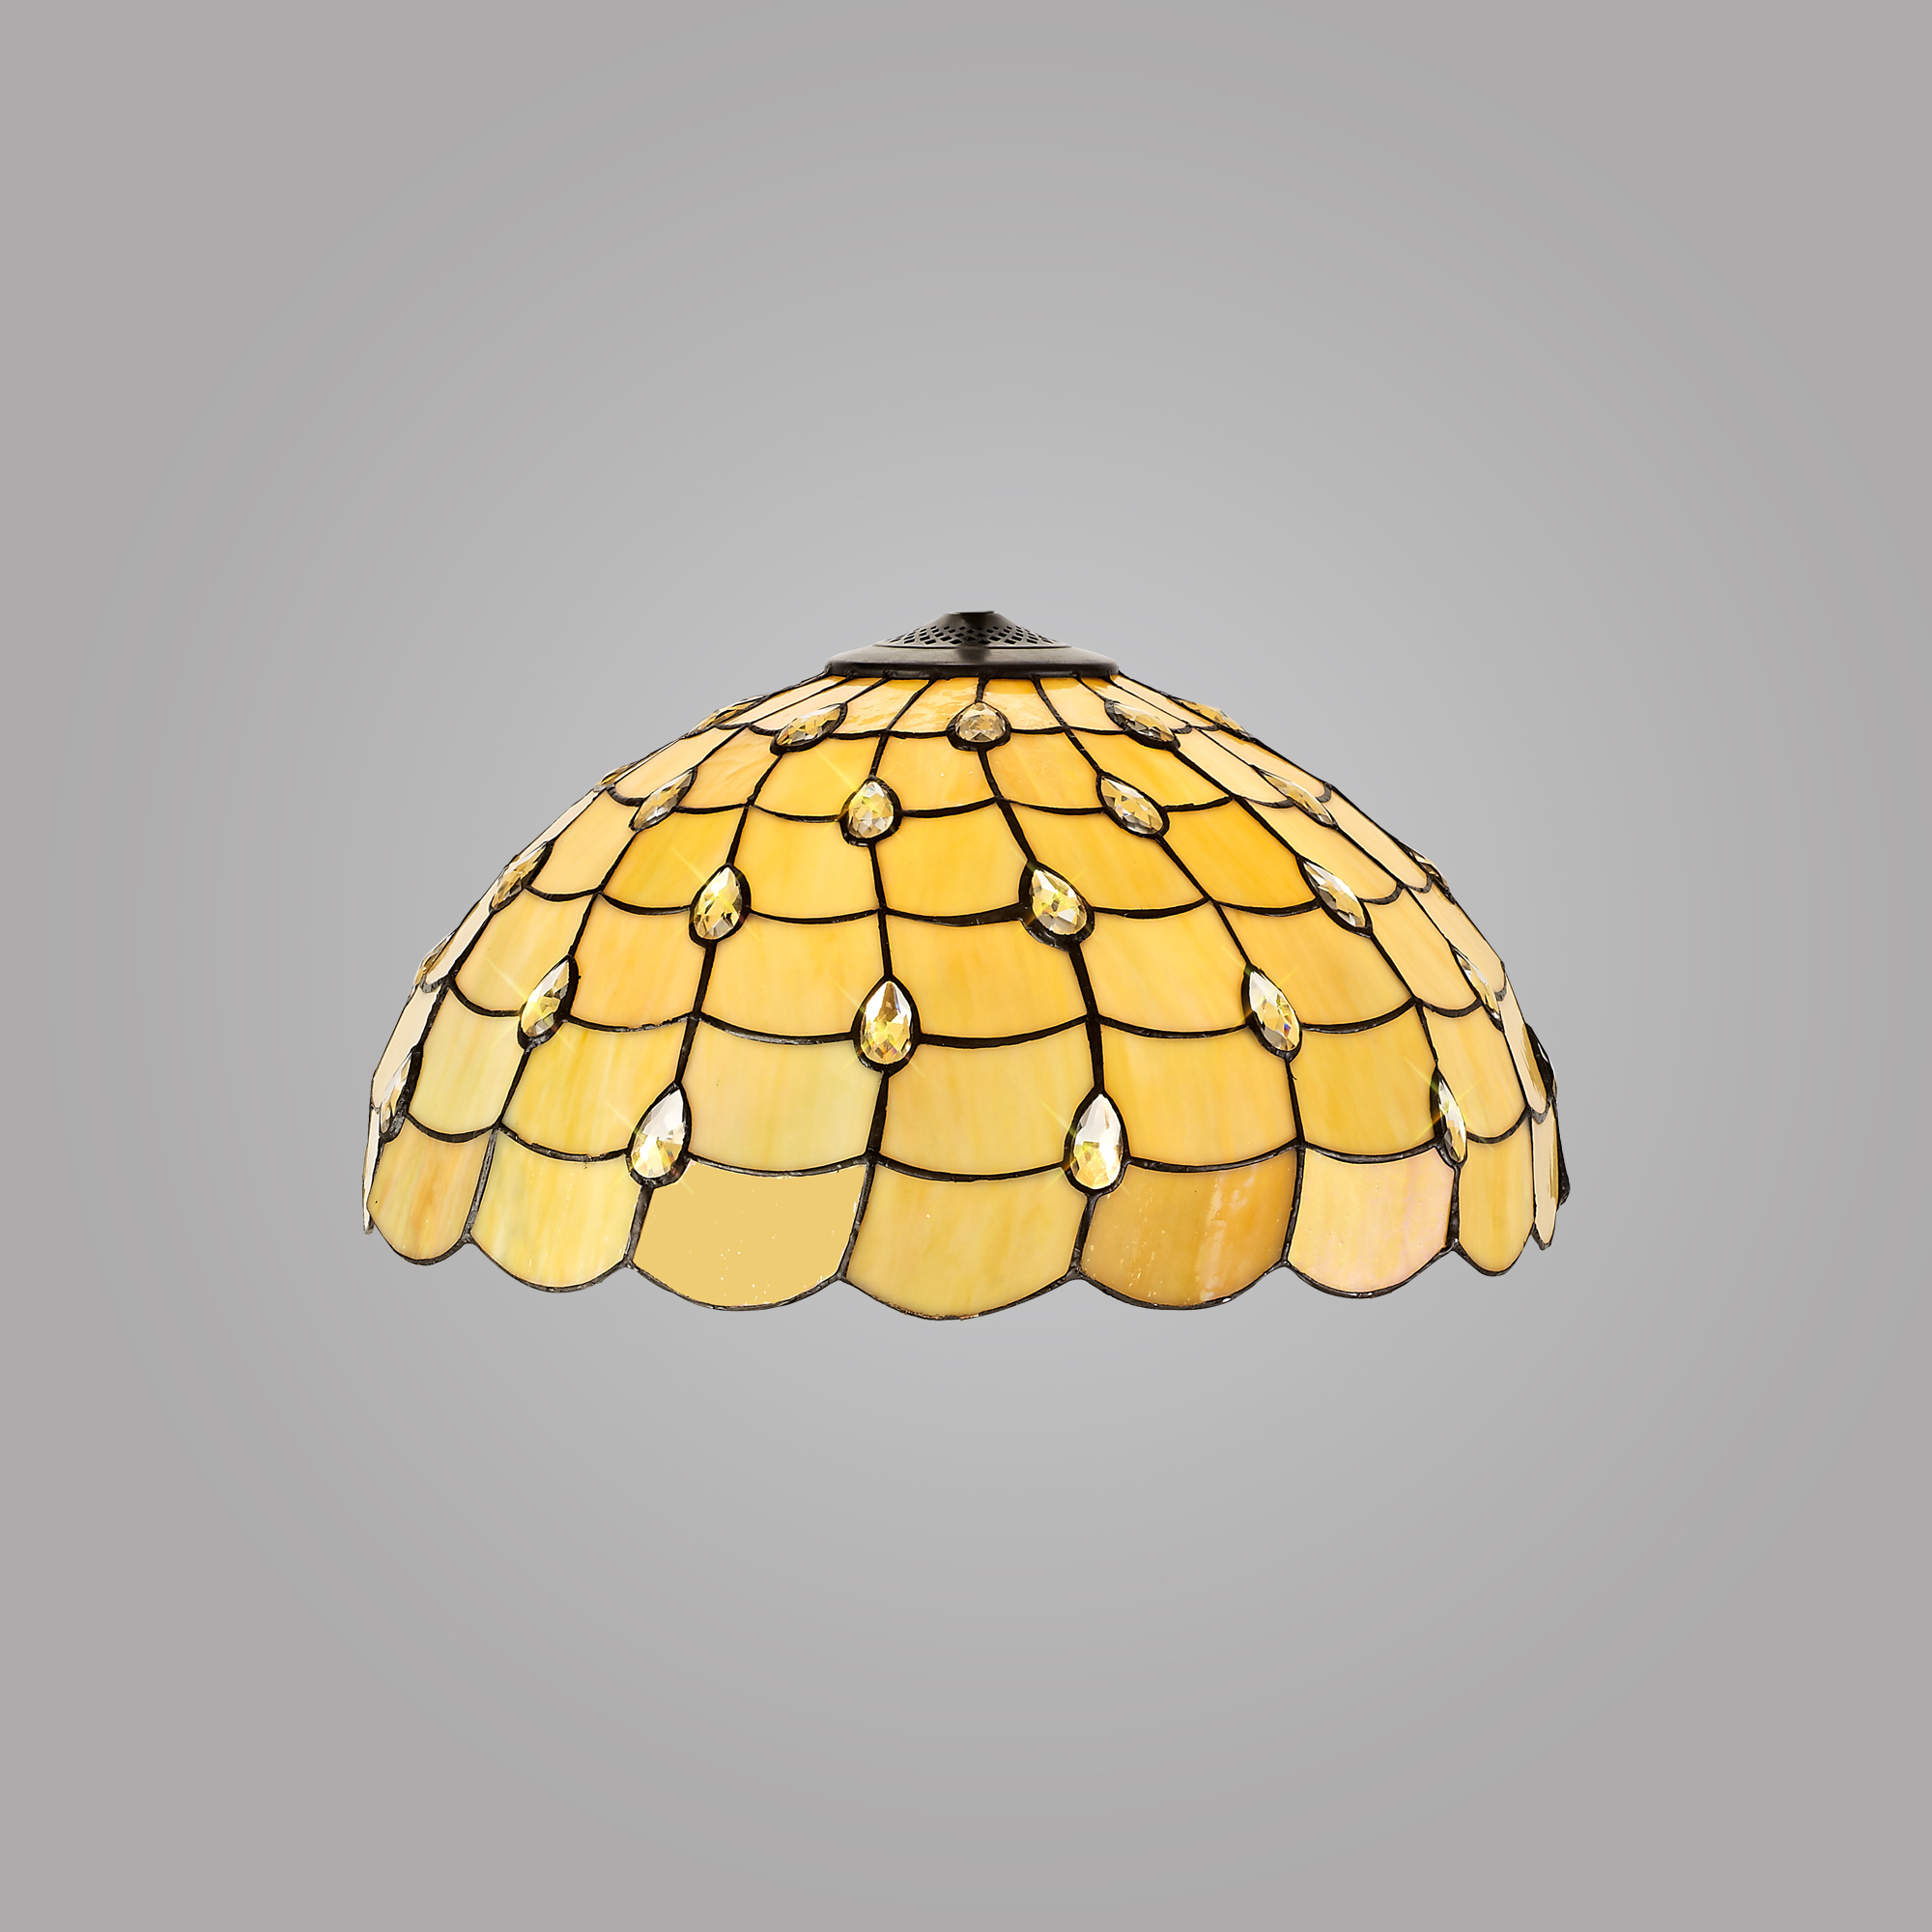 Tiffany 50cm Non-electric Shade Suitable For Pendant/Ceiling/Table Lamp, Beige/Clear Crystal